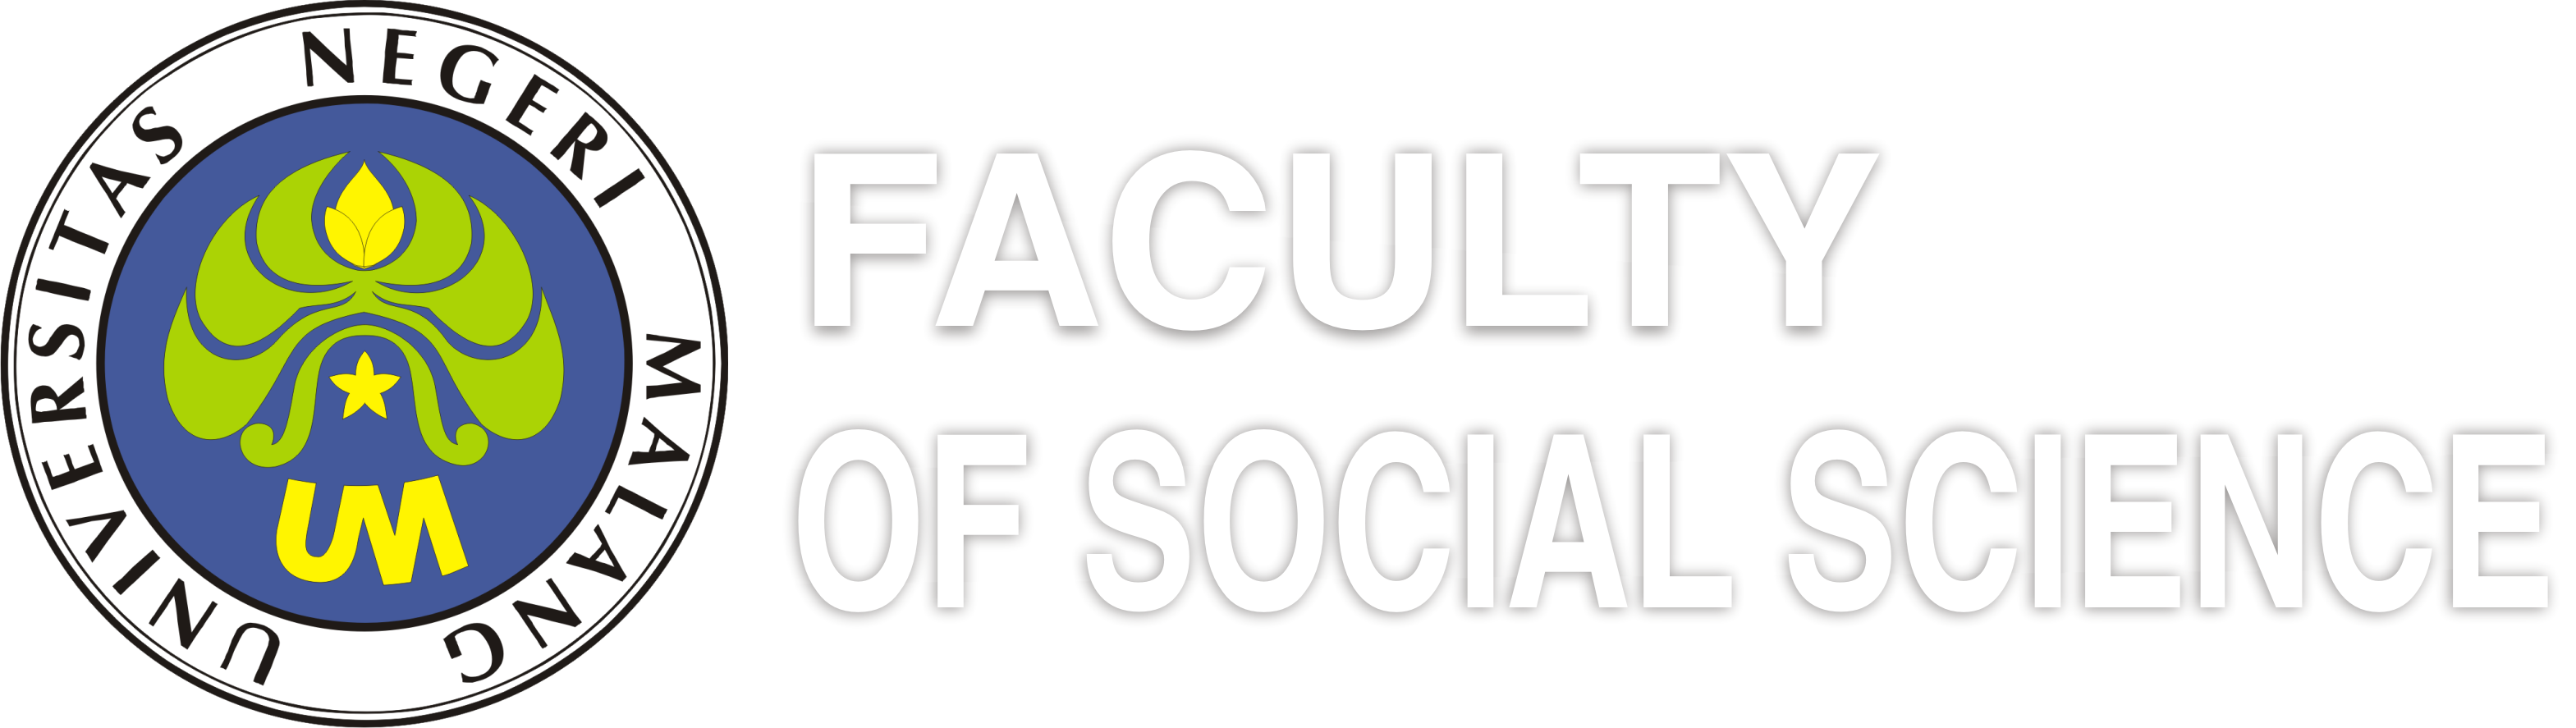 Faculty of Social Science